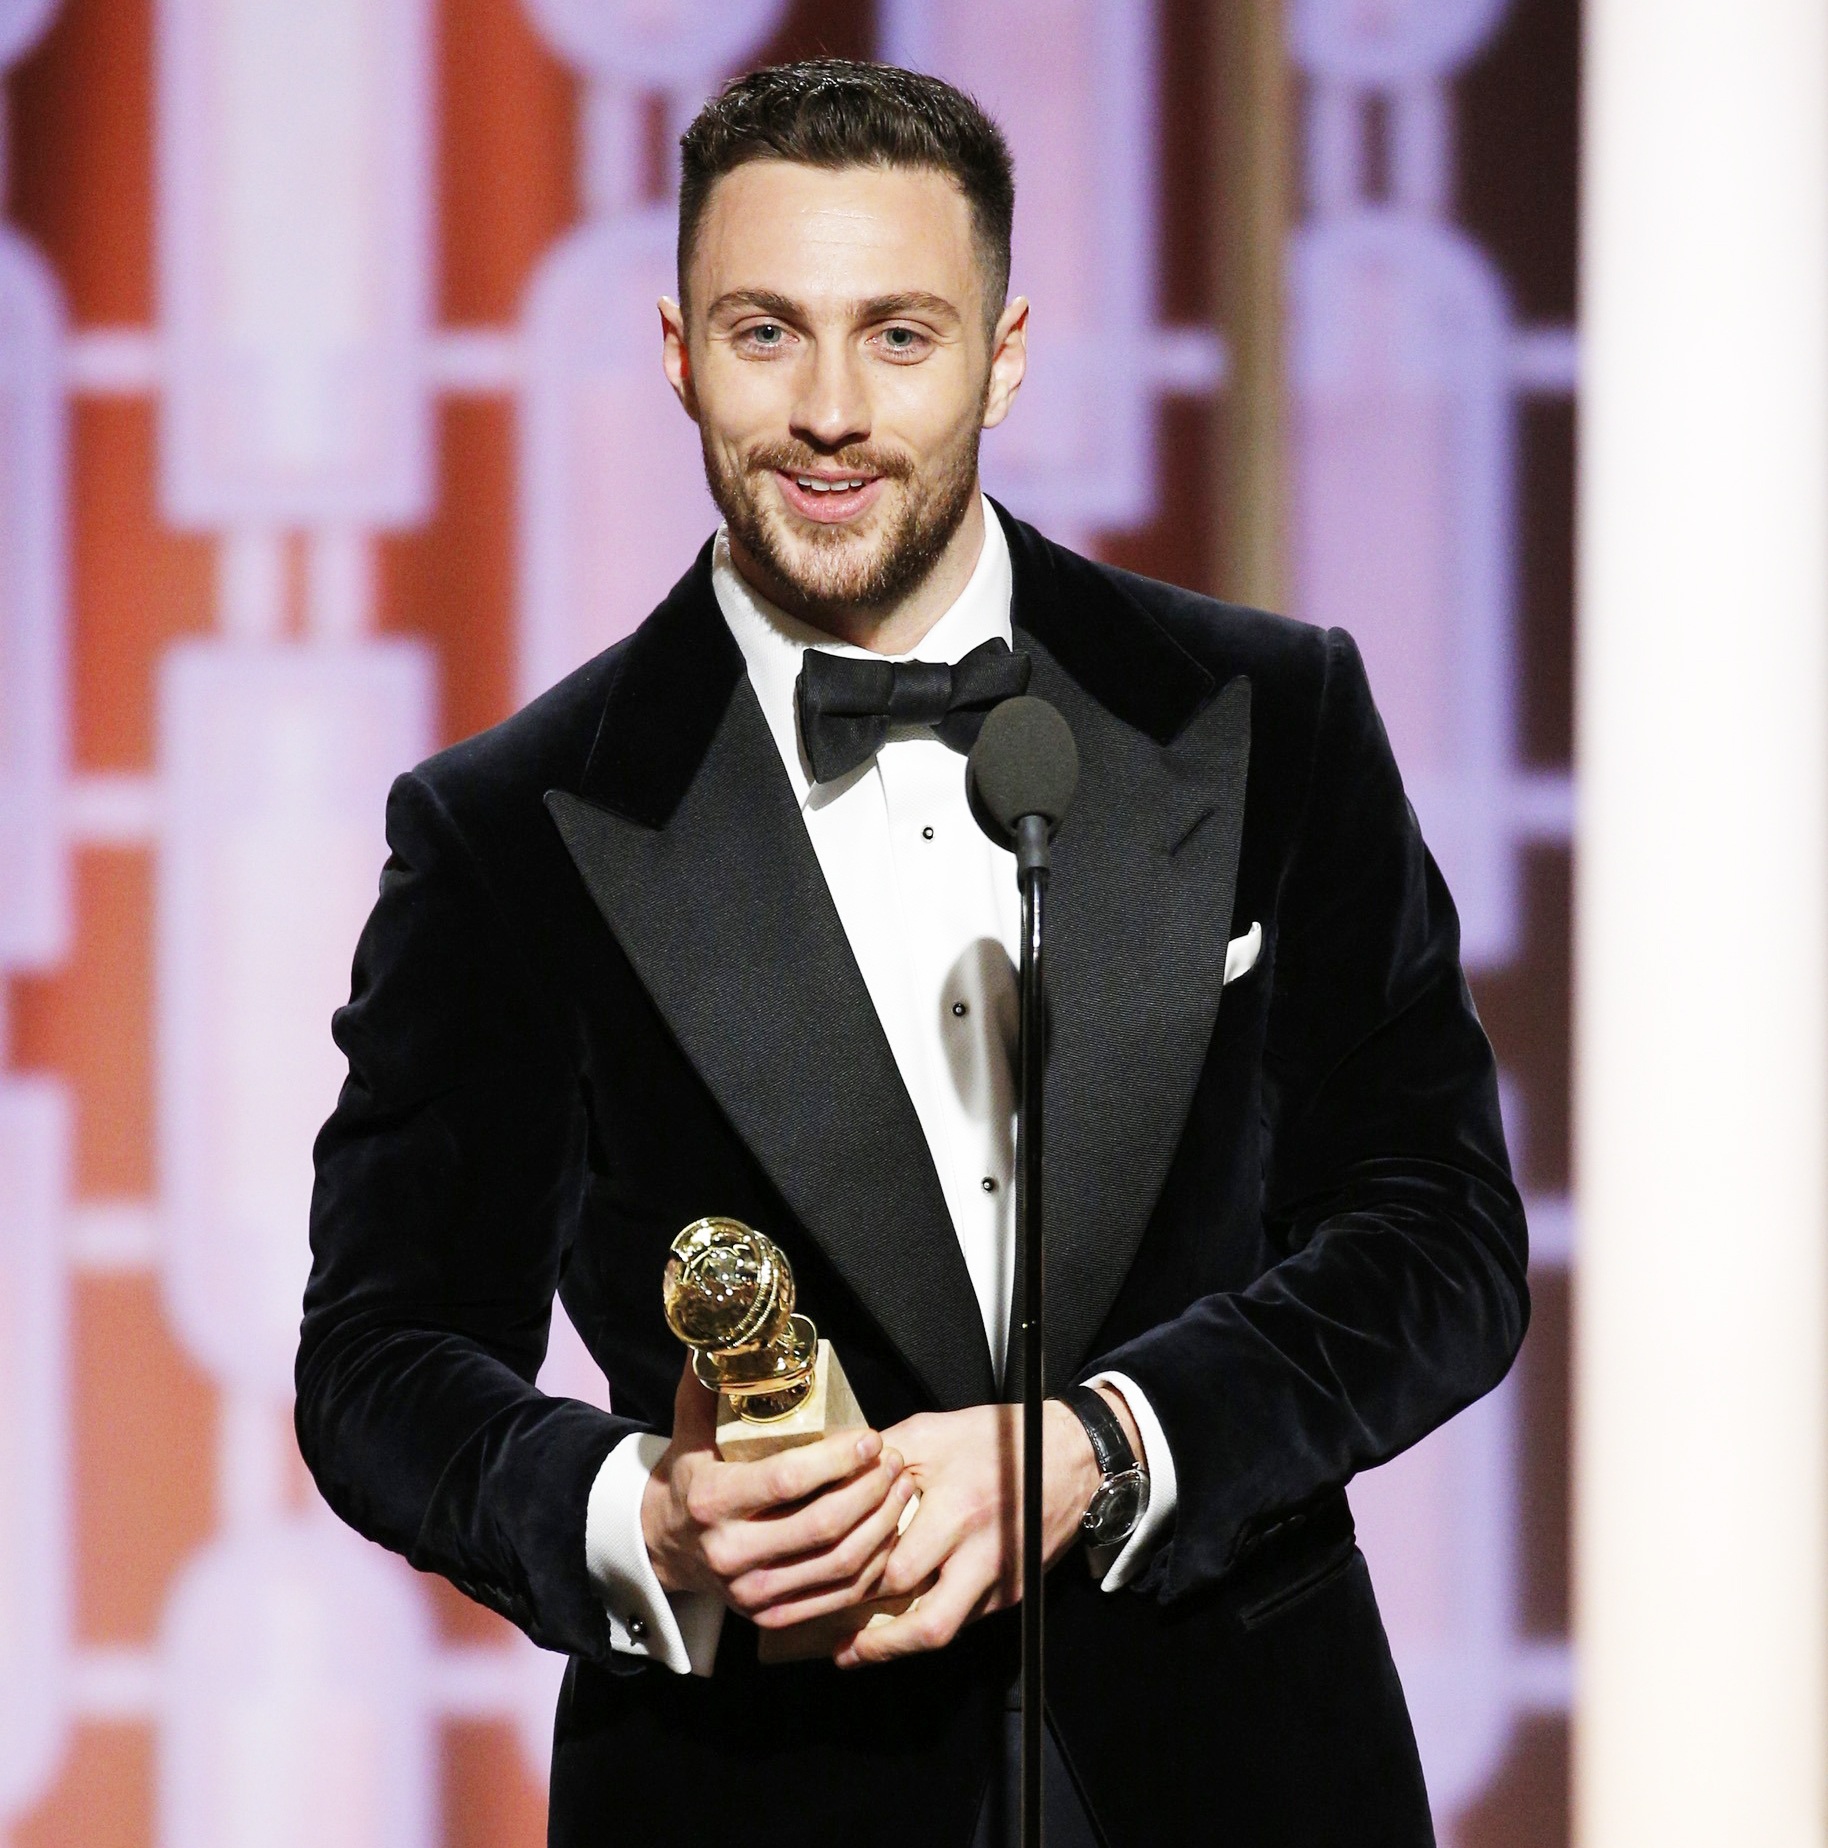 Aaron Taylor-Johnson accepts the award for Best Supporting Actor In A Motion Picture for his role in